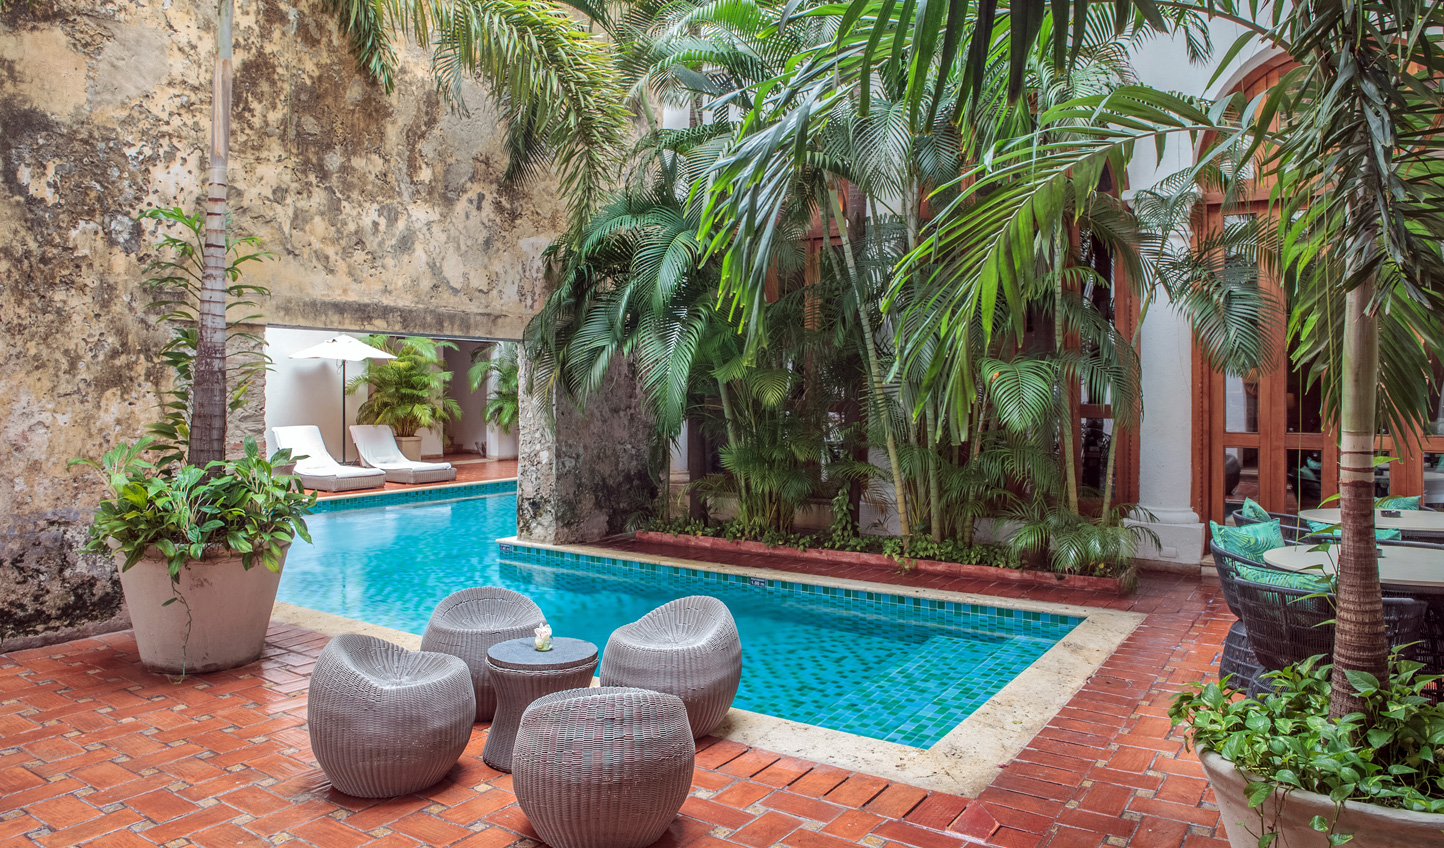 Discover a peaceful oasis in the heart of Cartagena